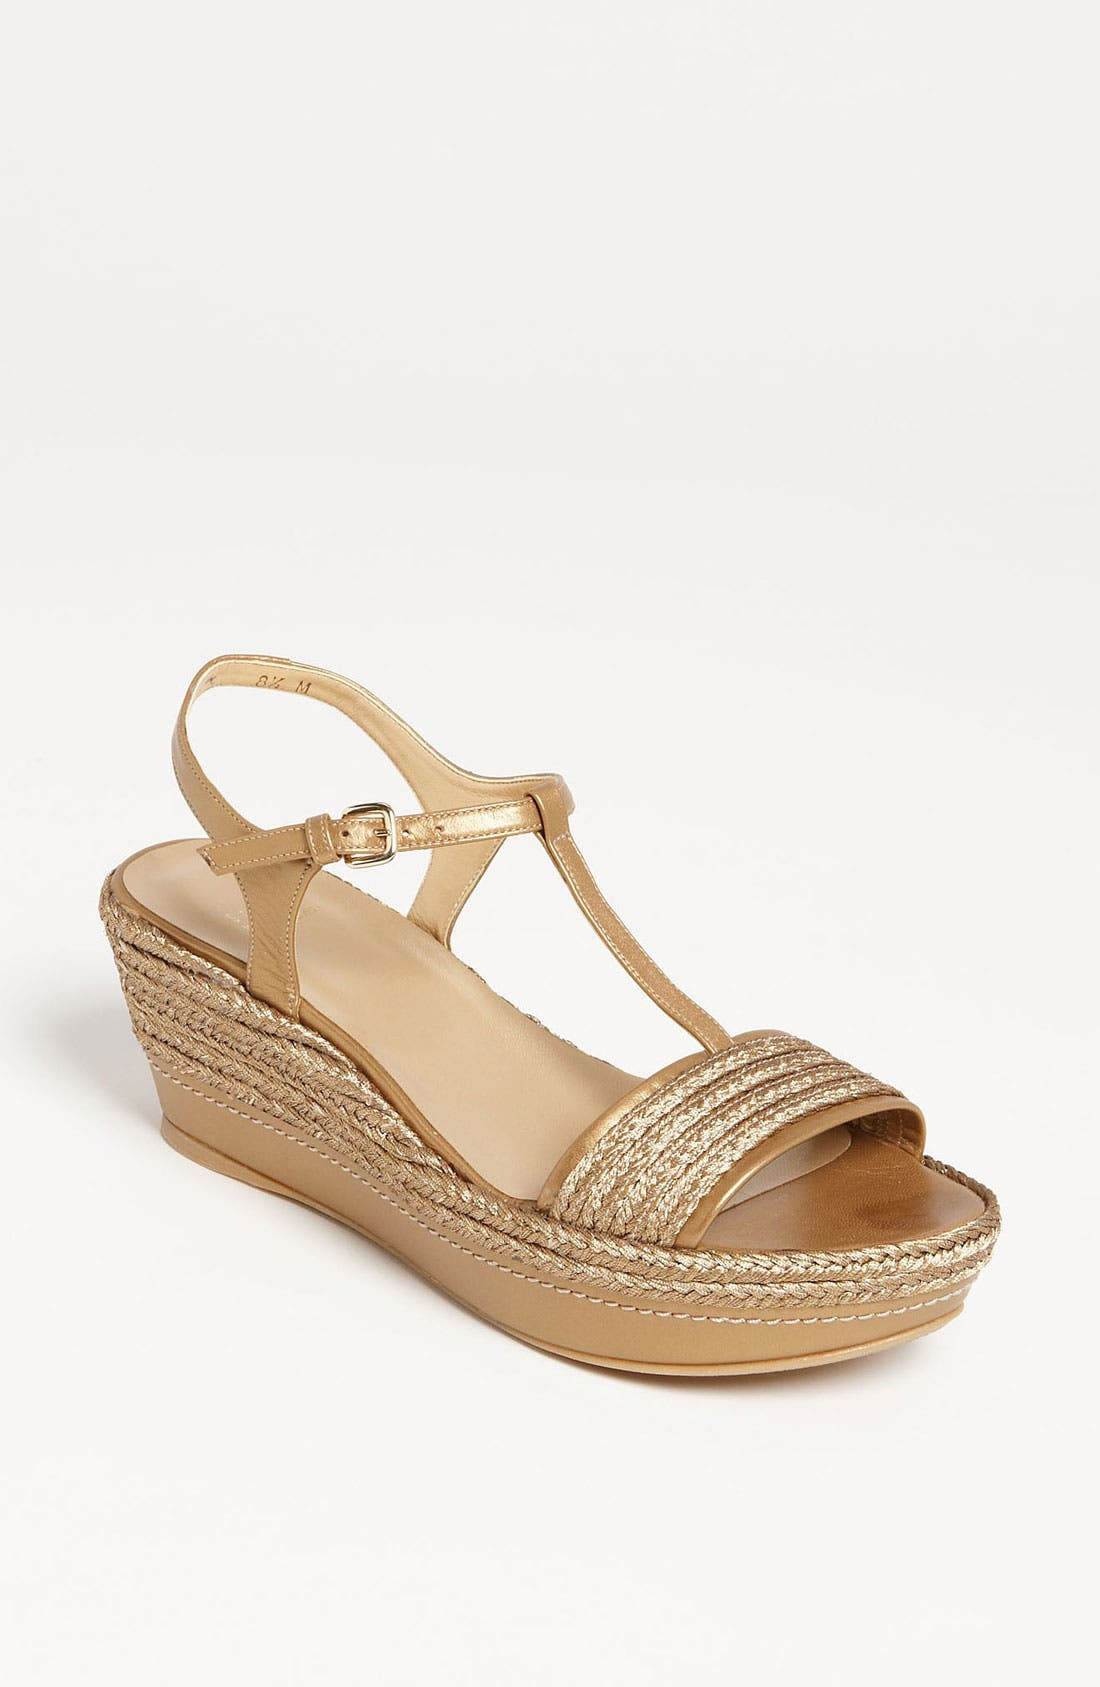 Alternate Image 1 Selected - Stuart Weitzman 'Flatty' Sandal